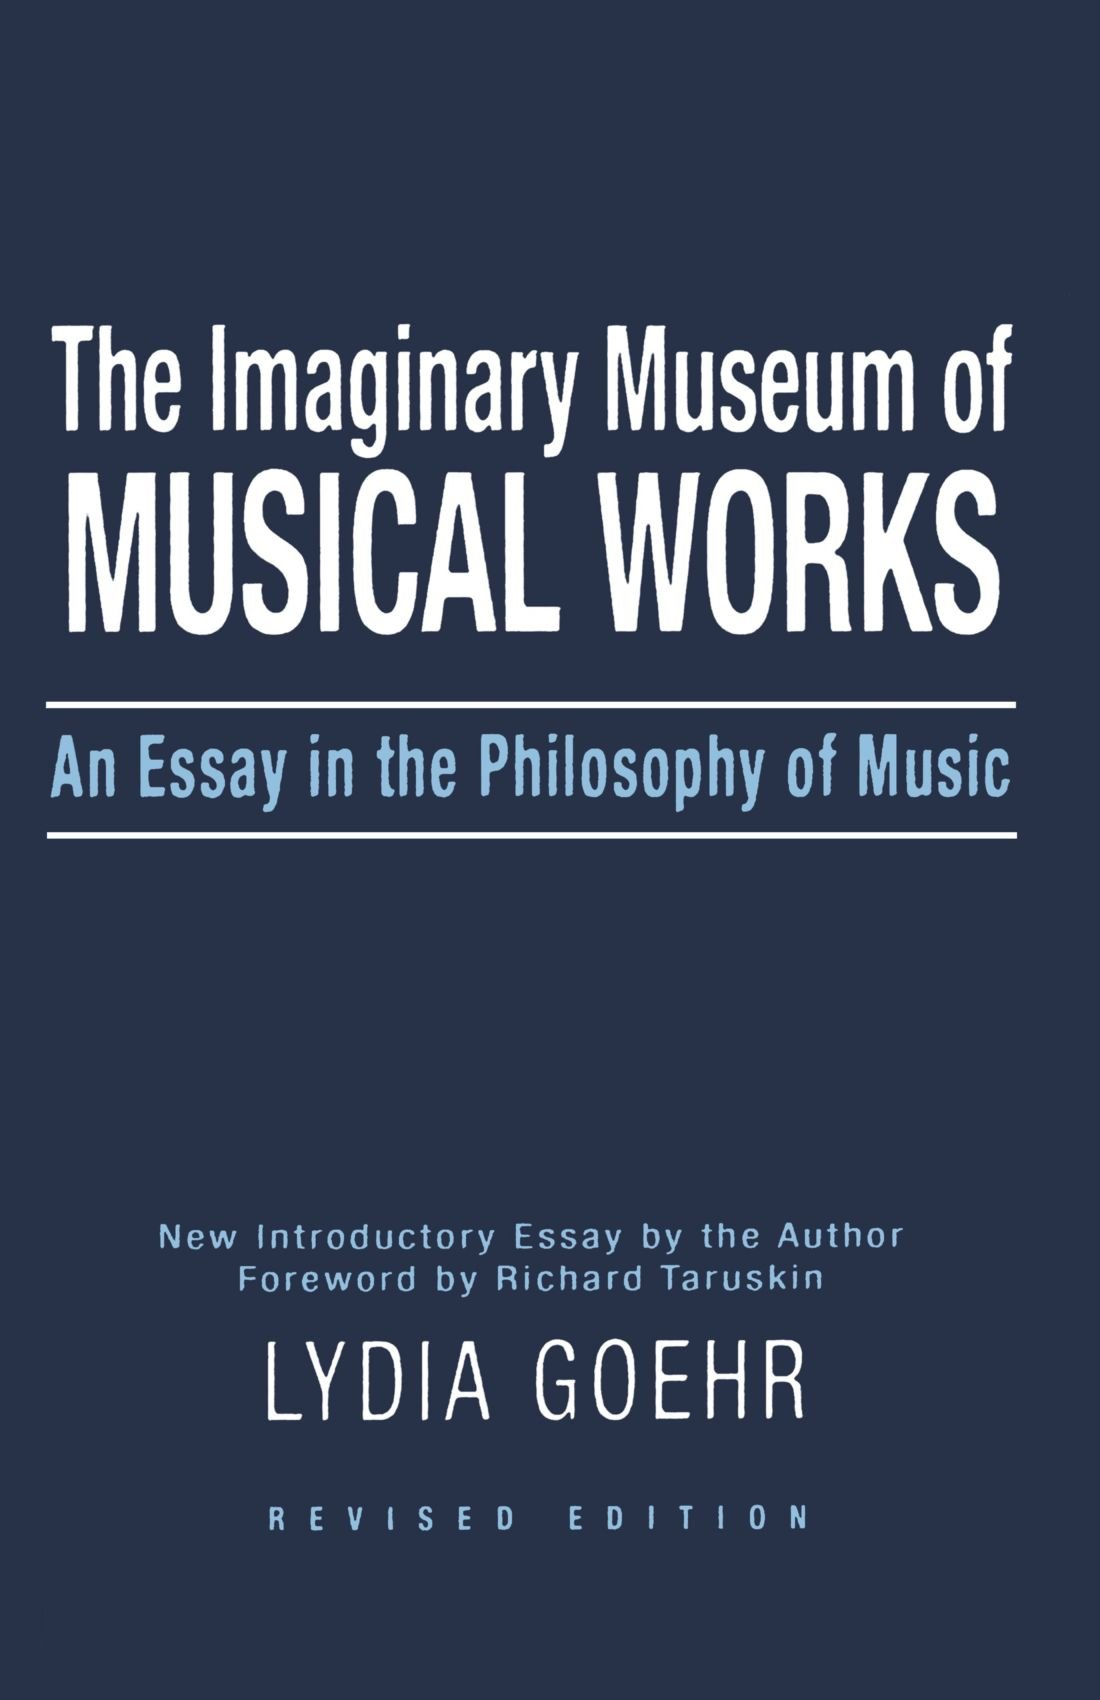 the imaginary museum of musical works an essay in the philosophy the imaginary museum of musical works an essay in the philosophy of music amazon co uk lydia goehr 9780195324785 books